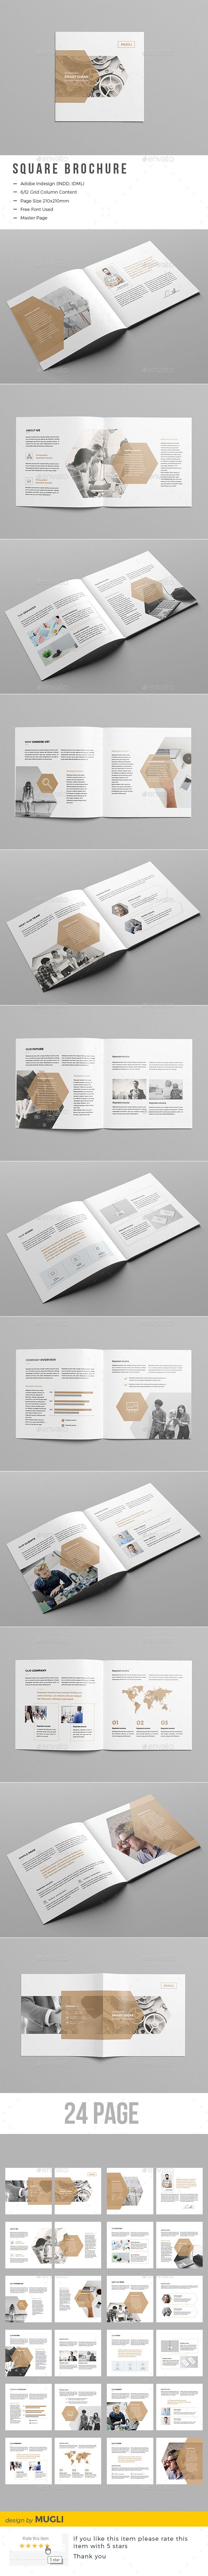 Corporate Square Brochure — InDesign INDD #infographics #digital • Available here → https://graphicriver.net/item/corporate-square-brochure/17958352?ref=pxcr